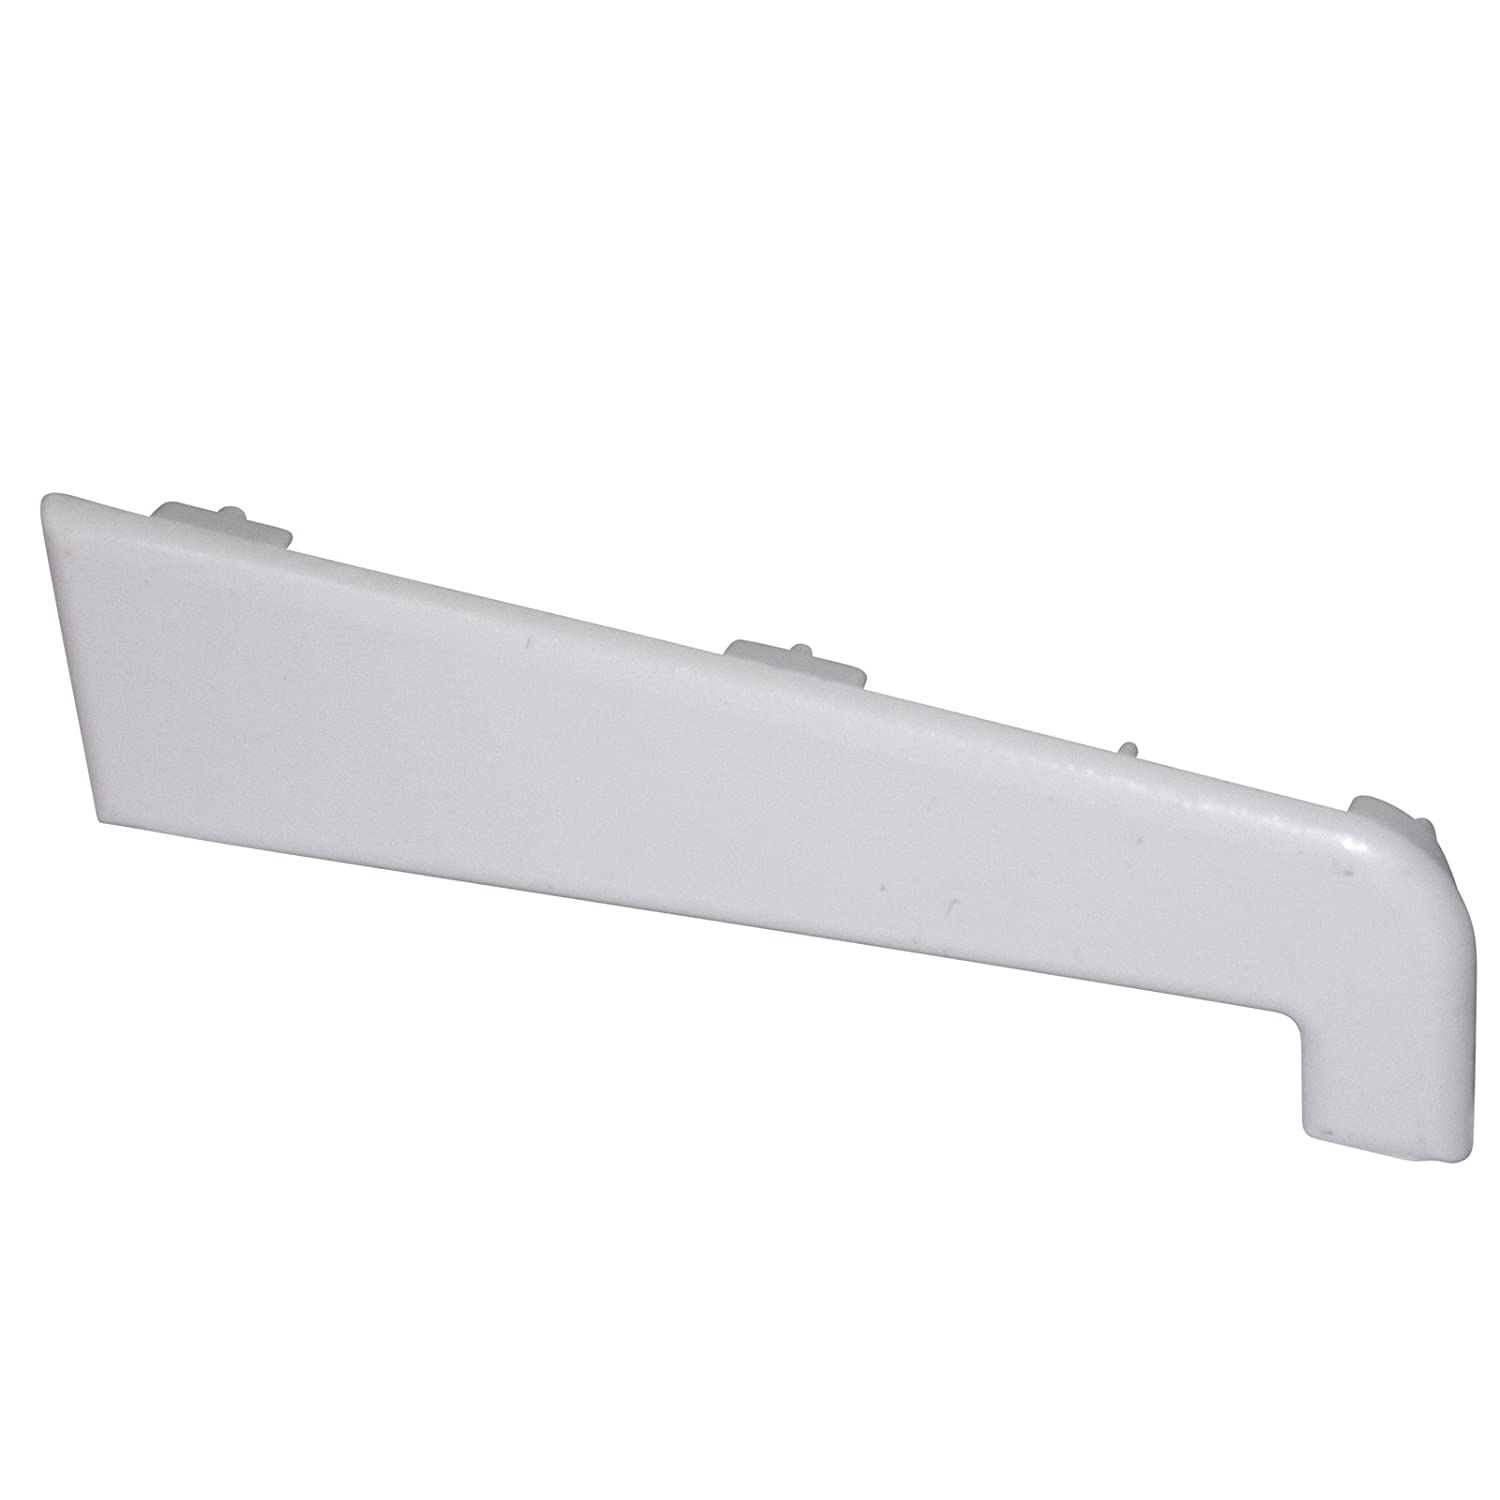 5 x Pairs of White 150mm Window Cill End Caps - Suitable for Eurocell and many other manufacturers uPVC window cills